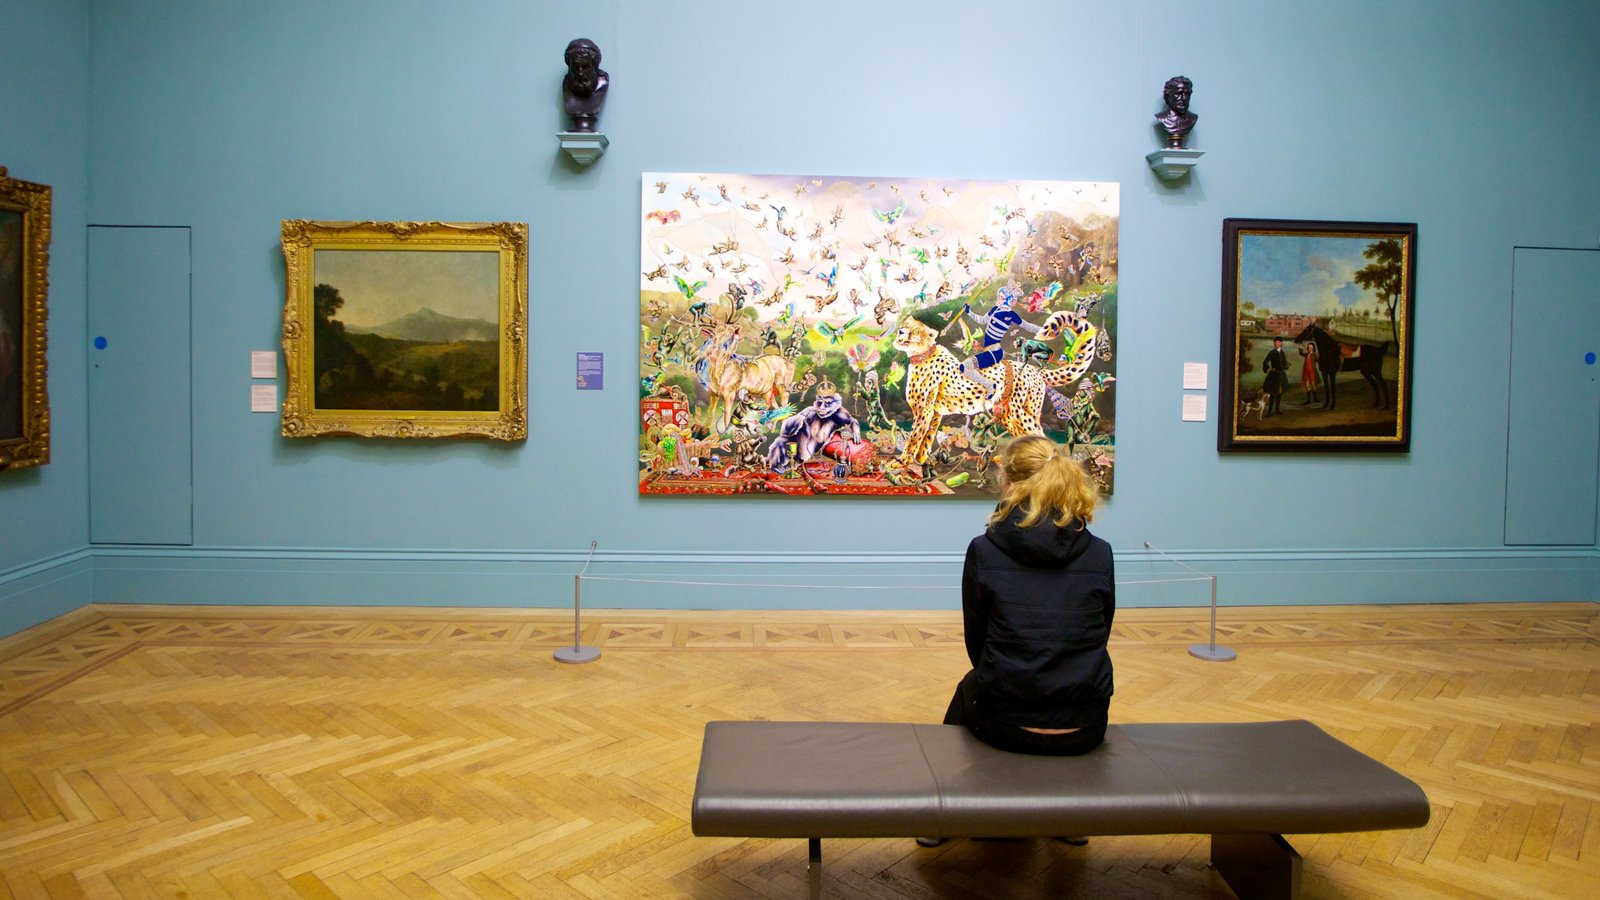 Manchester Art Gallery showing interior views and art as well as an individual femail